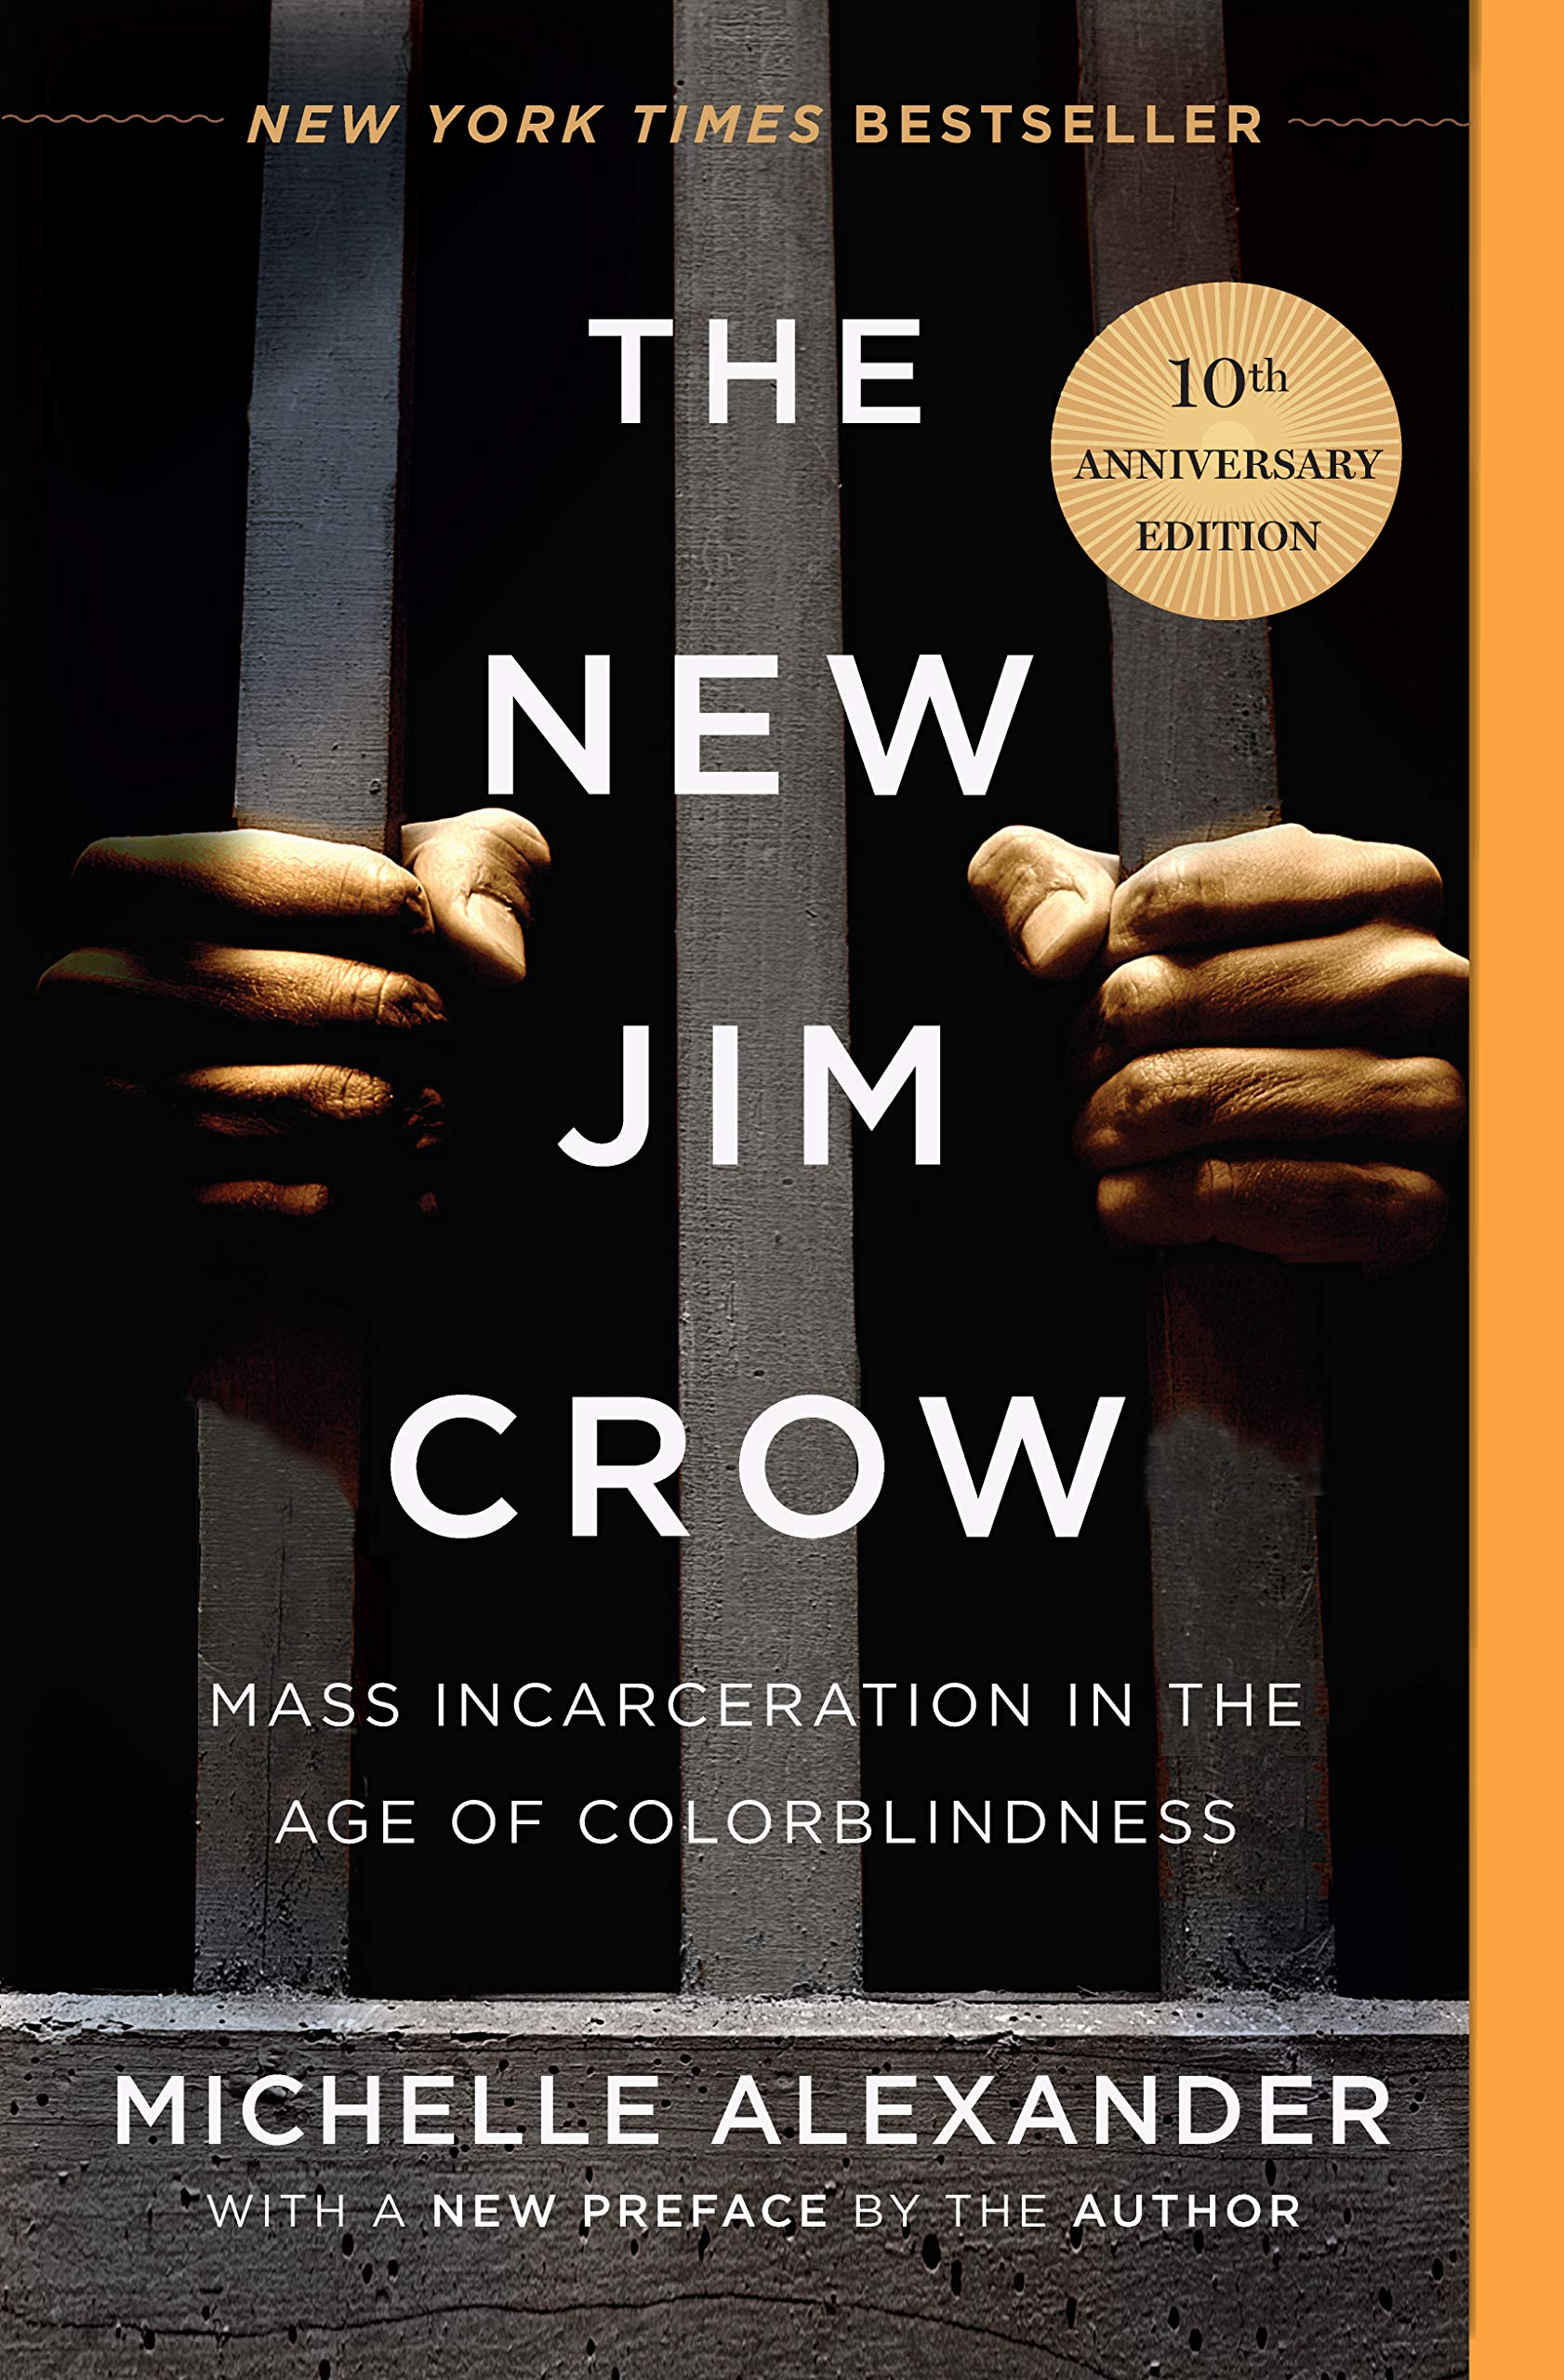 The New Jim Crow: Mass Incarceration in the Age of Colorblindness ...